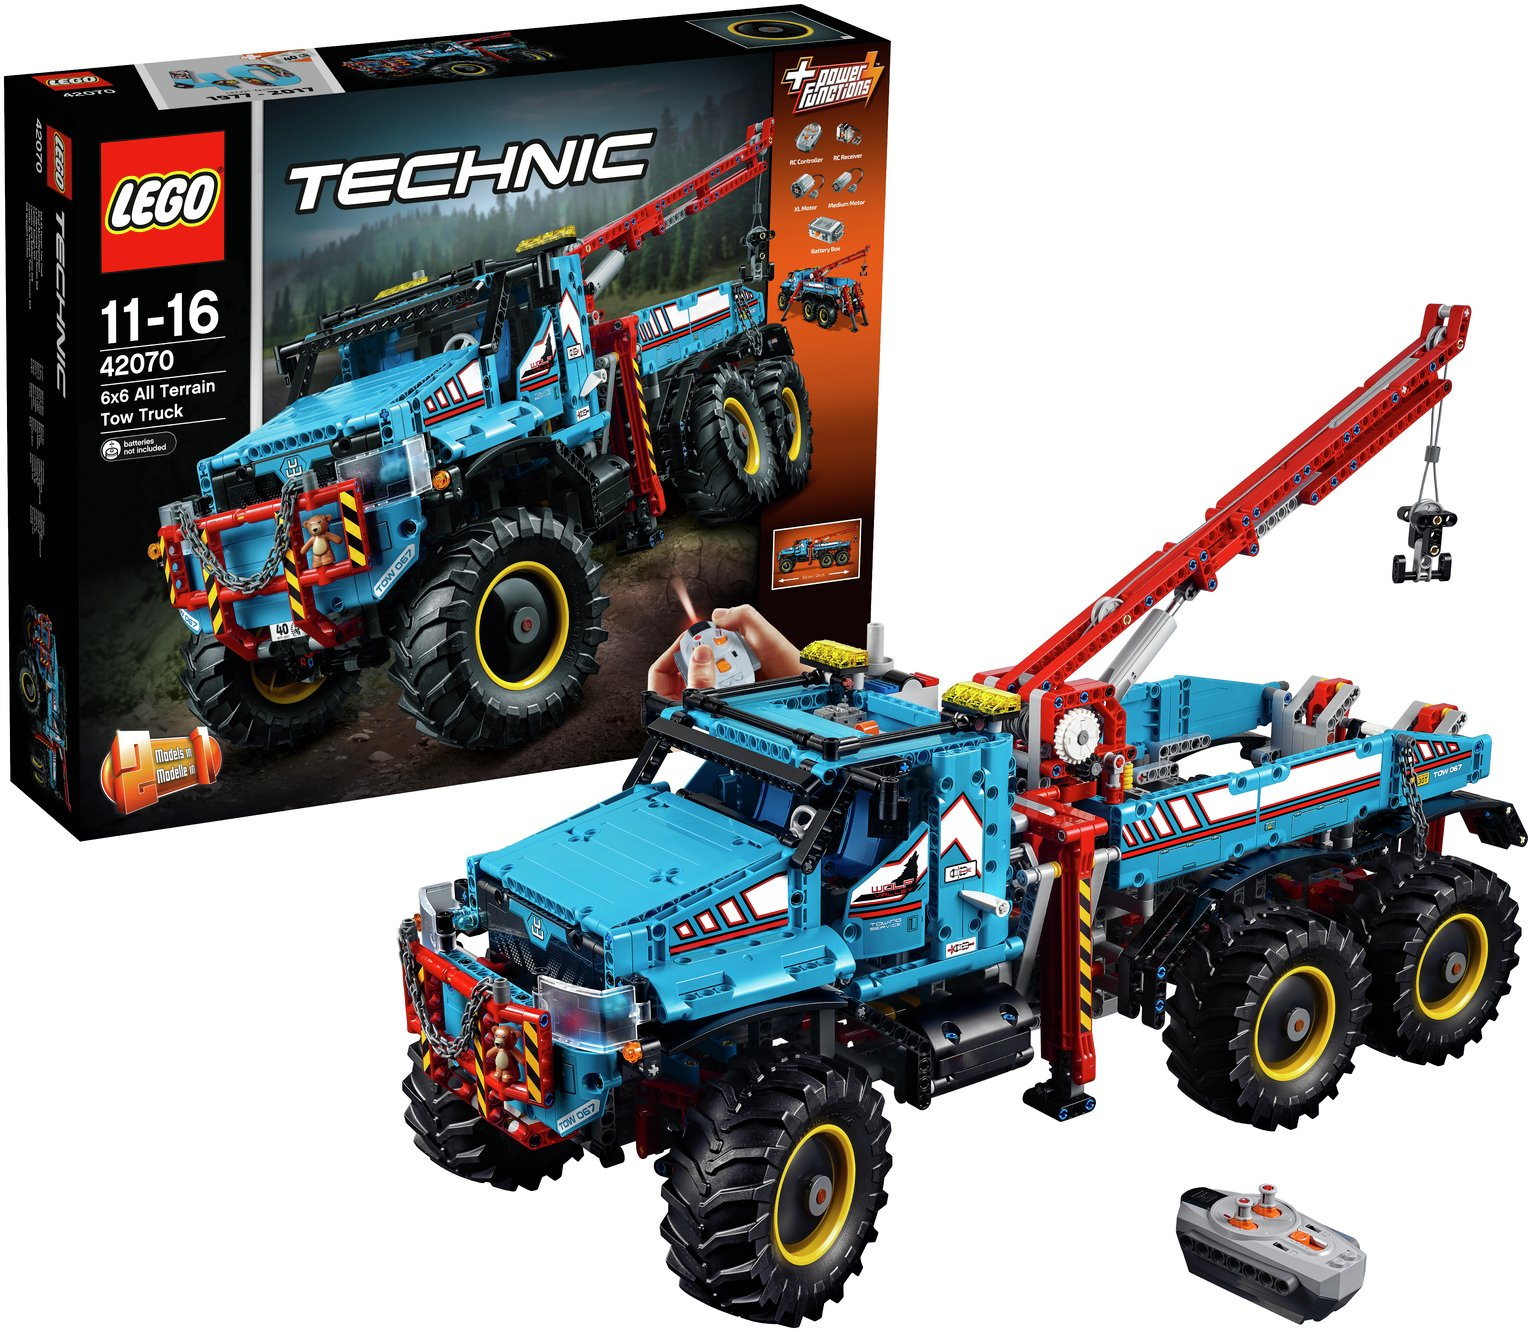 Image of LEGO Technic 6x6 All Terrain Tow Truck - 42070